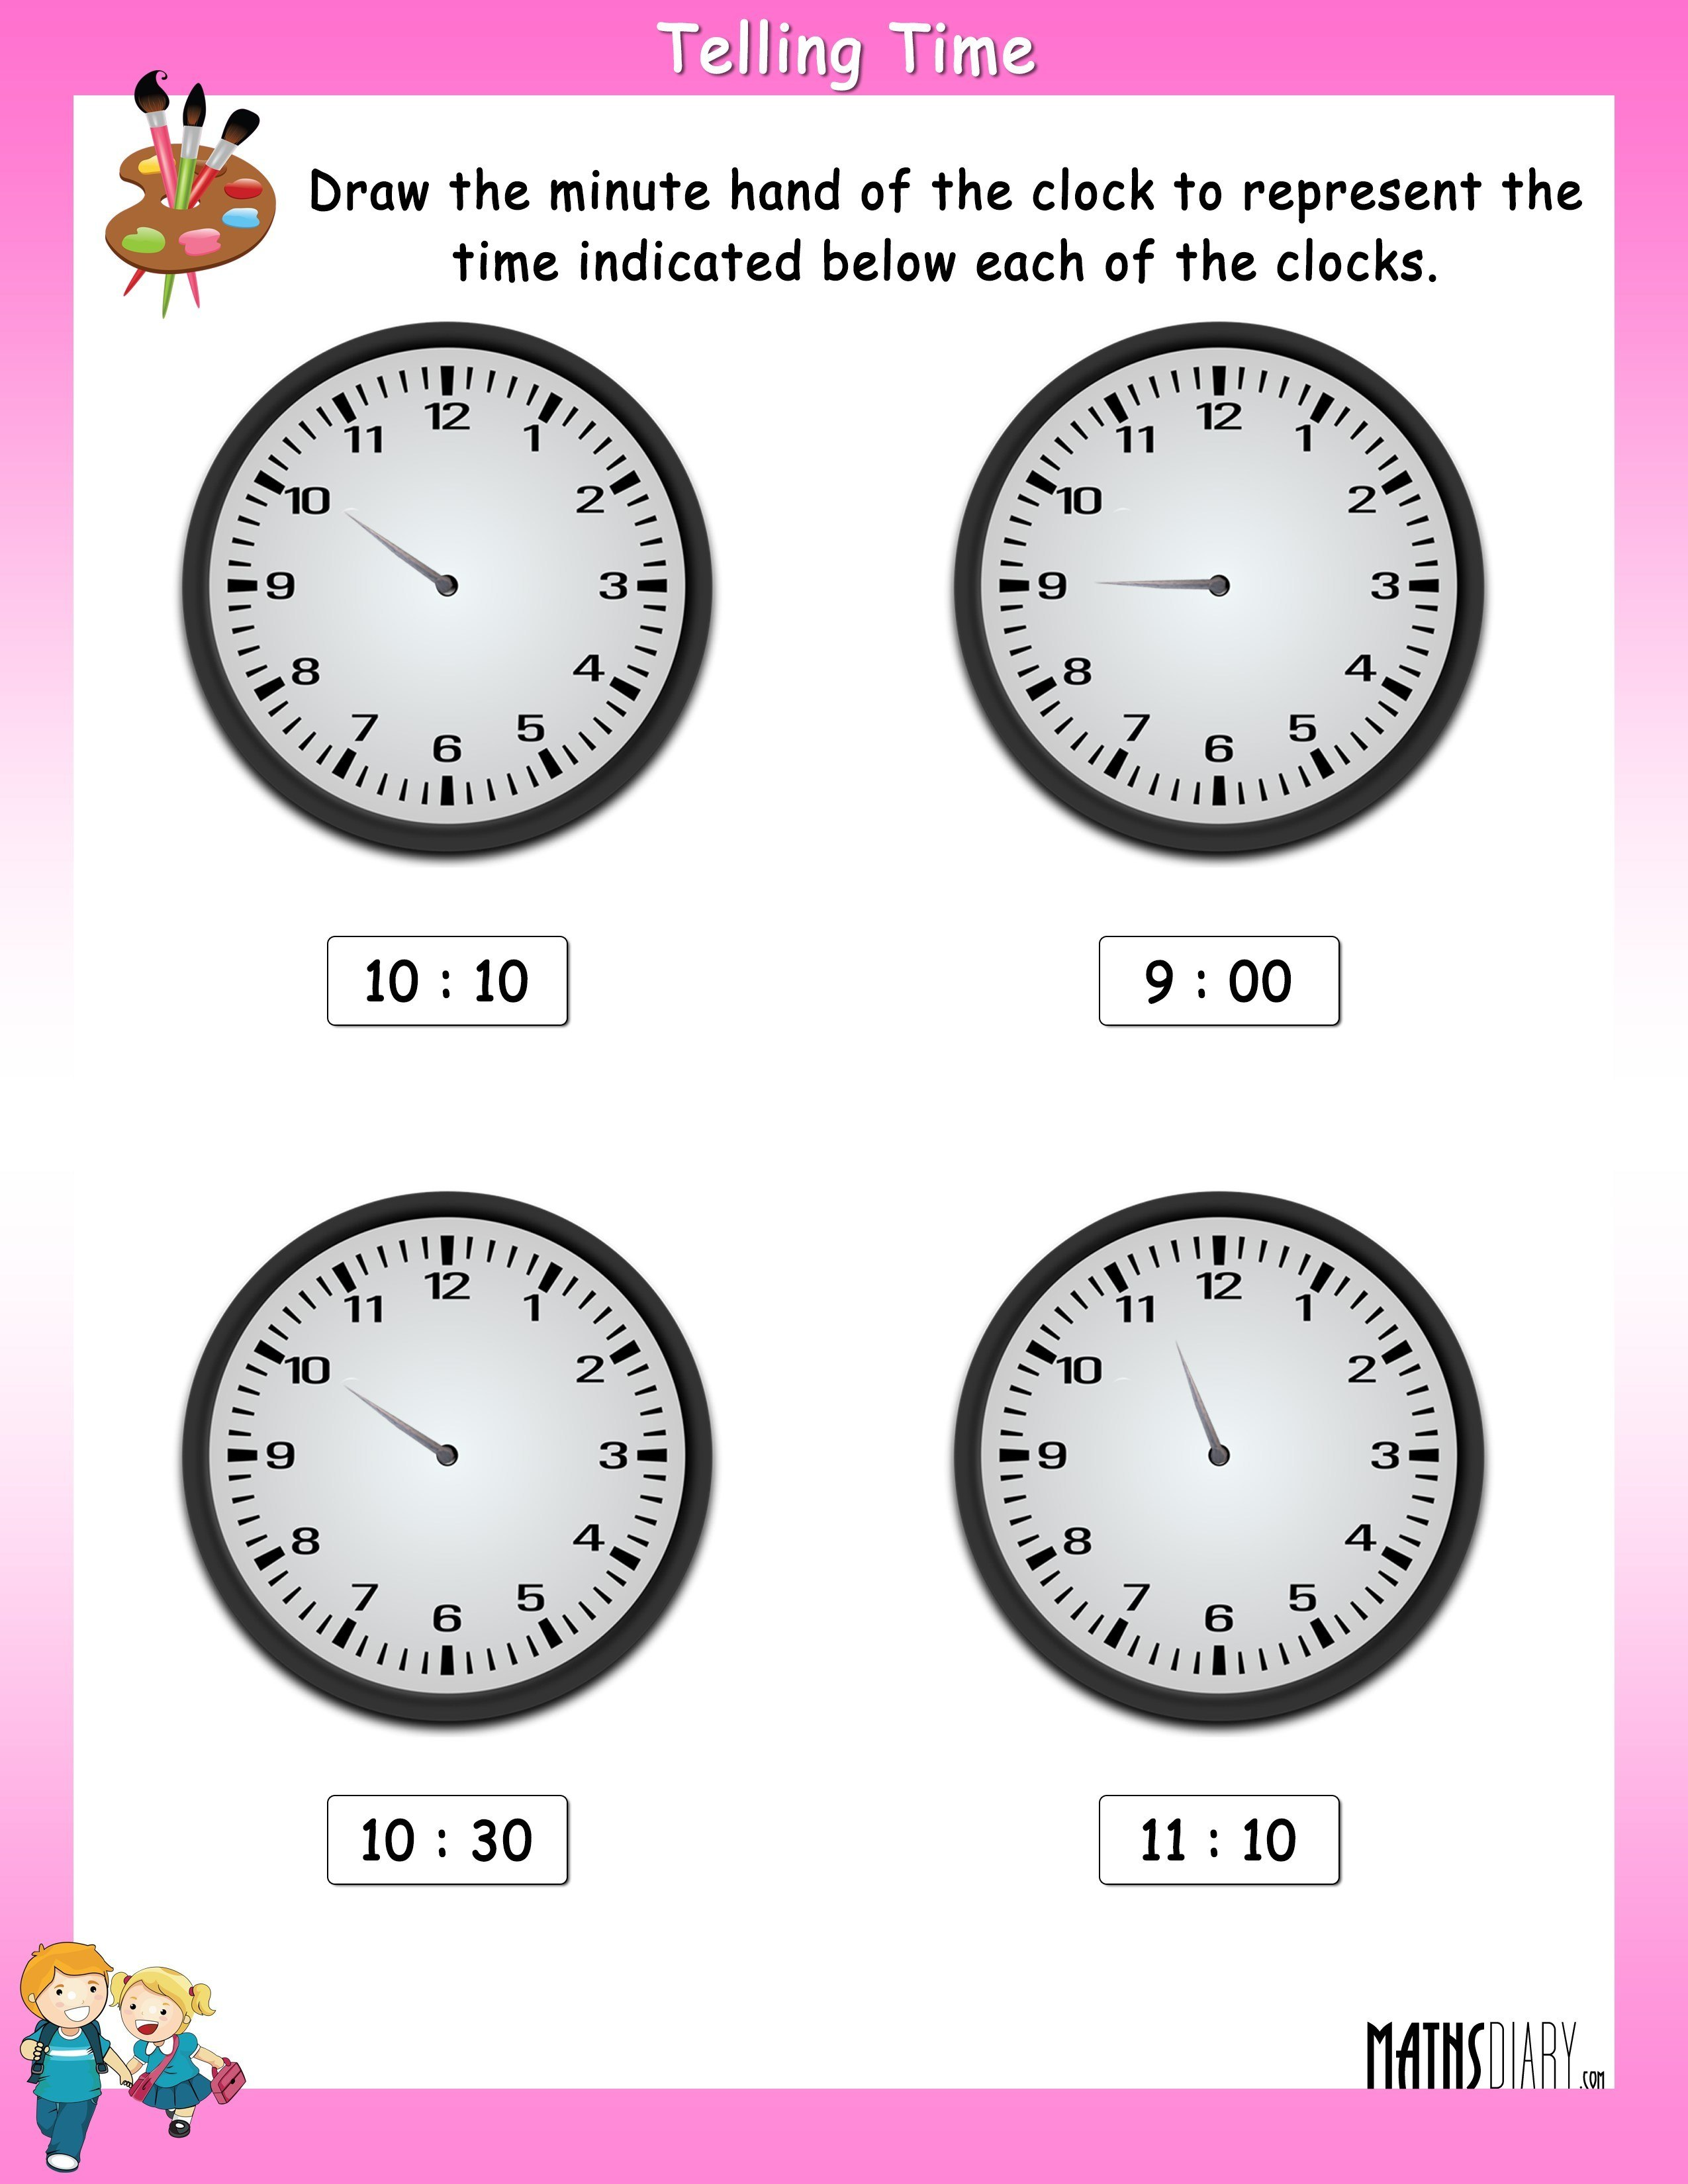 Draw The Minute Hand On The Clock To Represent The Time